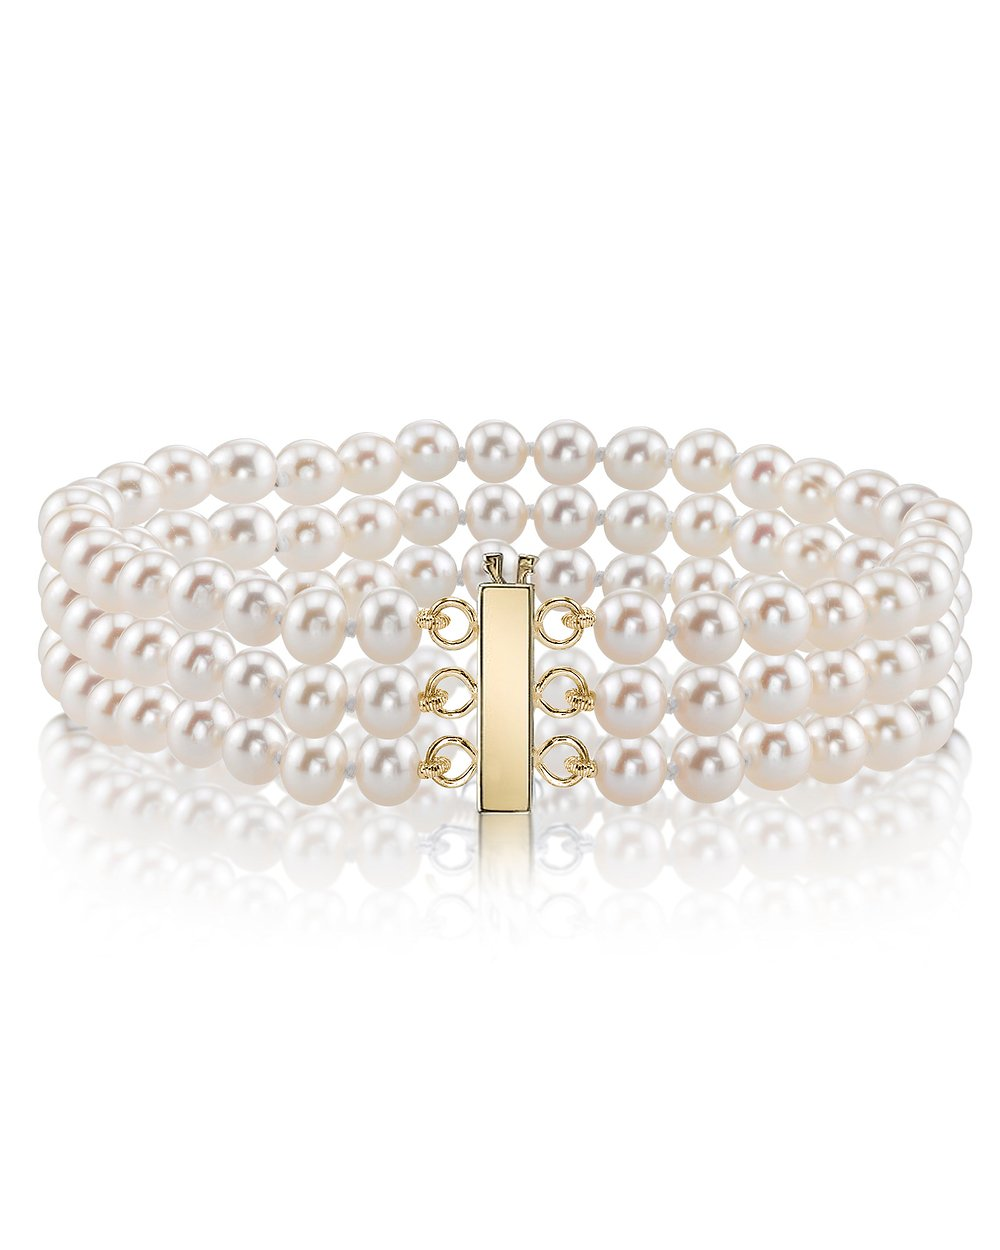 14K Gold 7.0-7.5mm Triple Japanese Akoya Saltwater White Cultured Pearl Bracelet - AAA Quality